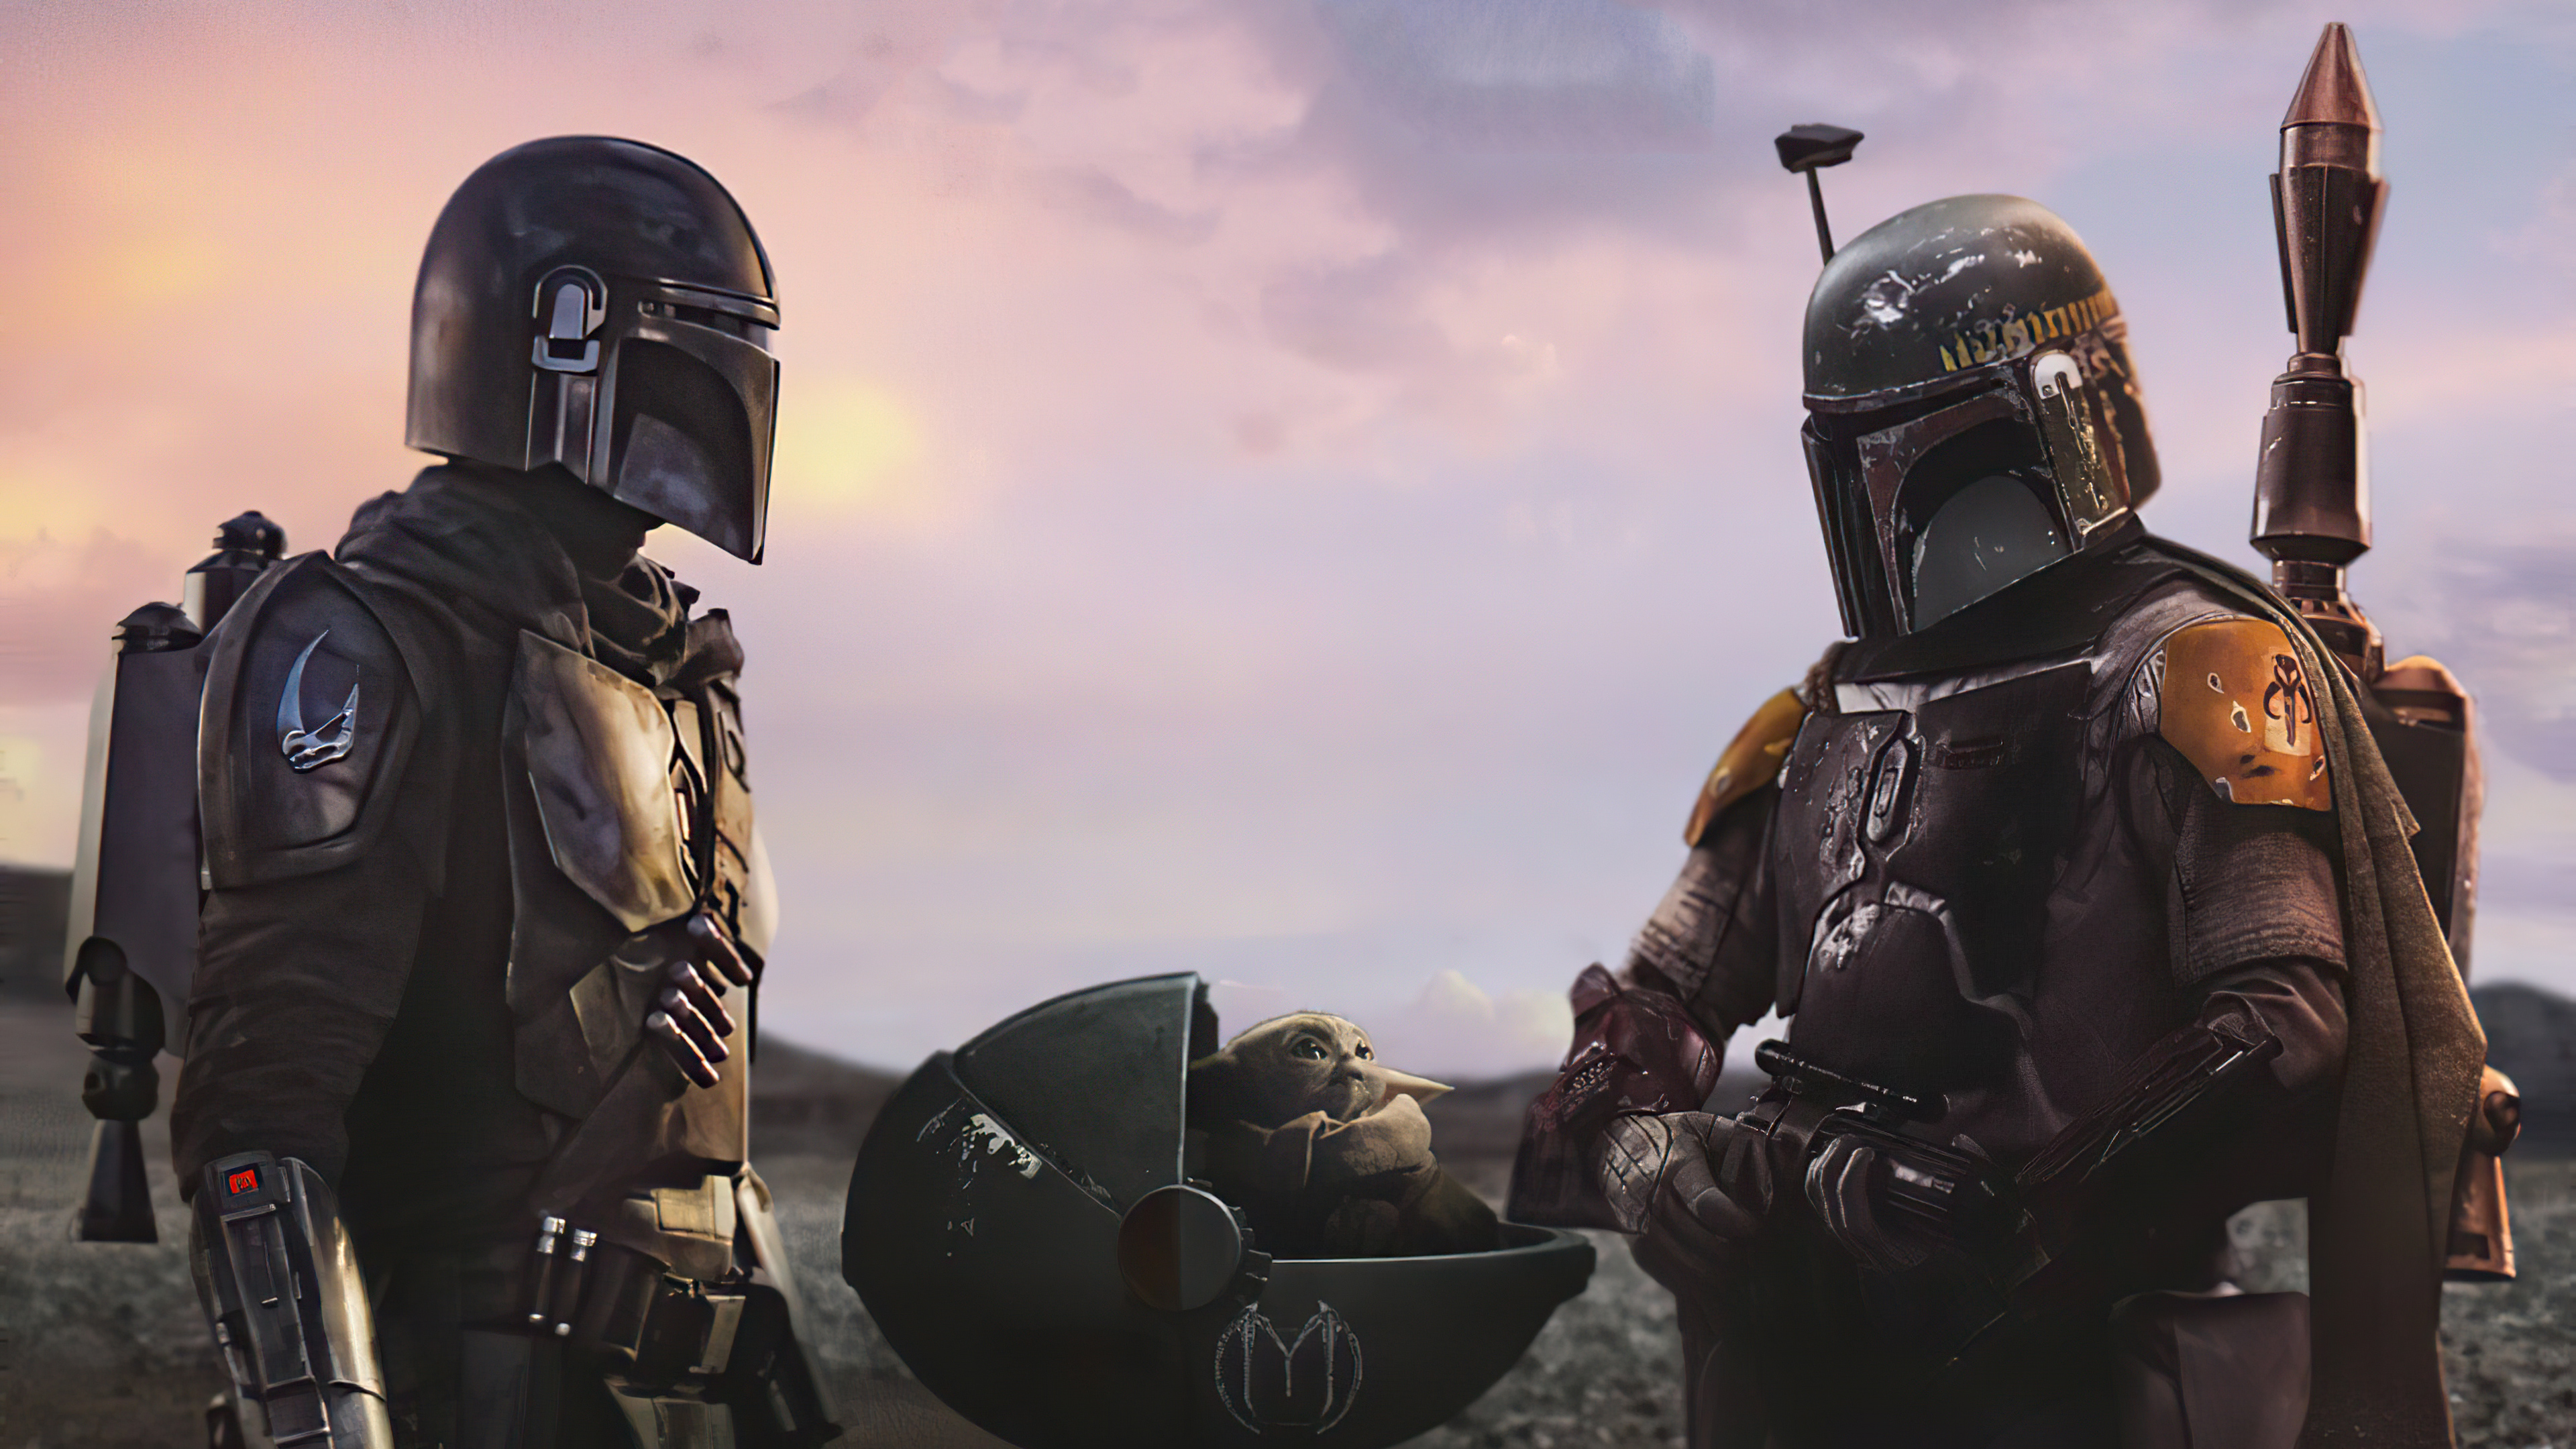 The Mandalorian Season 2 4k Hd Tv Shows 4k Wallpapers Images Backgrounds Photos And Pictures